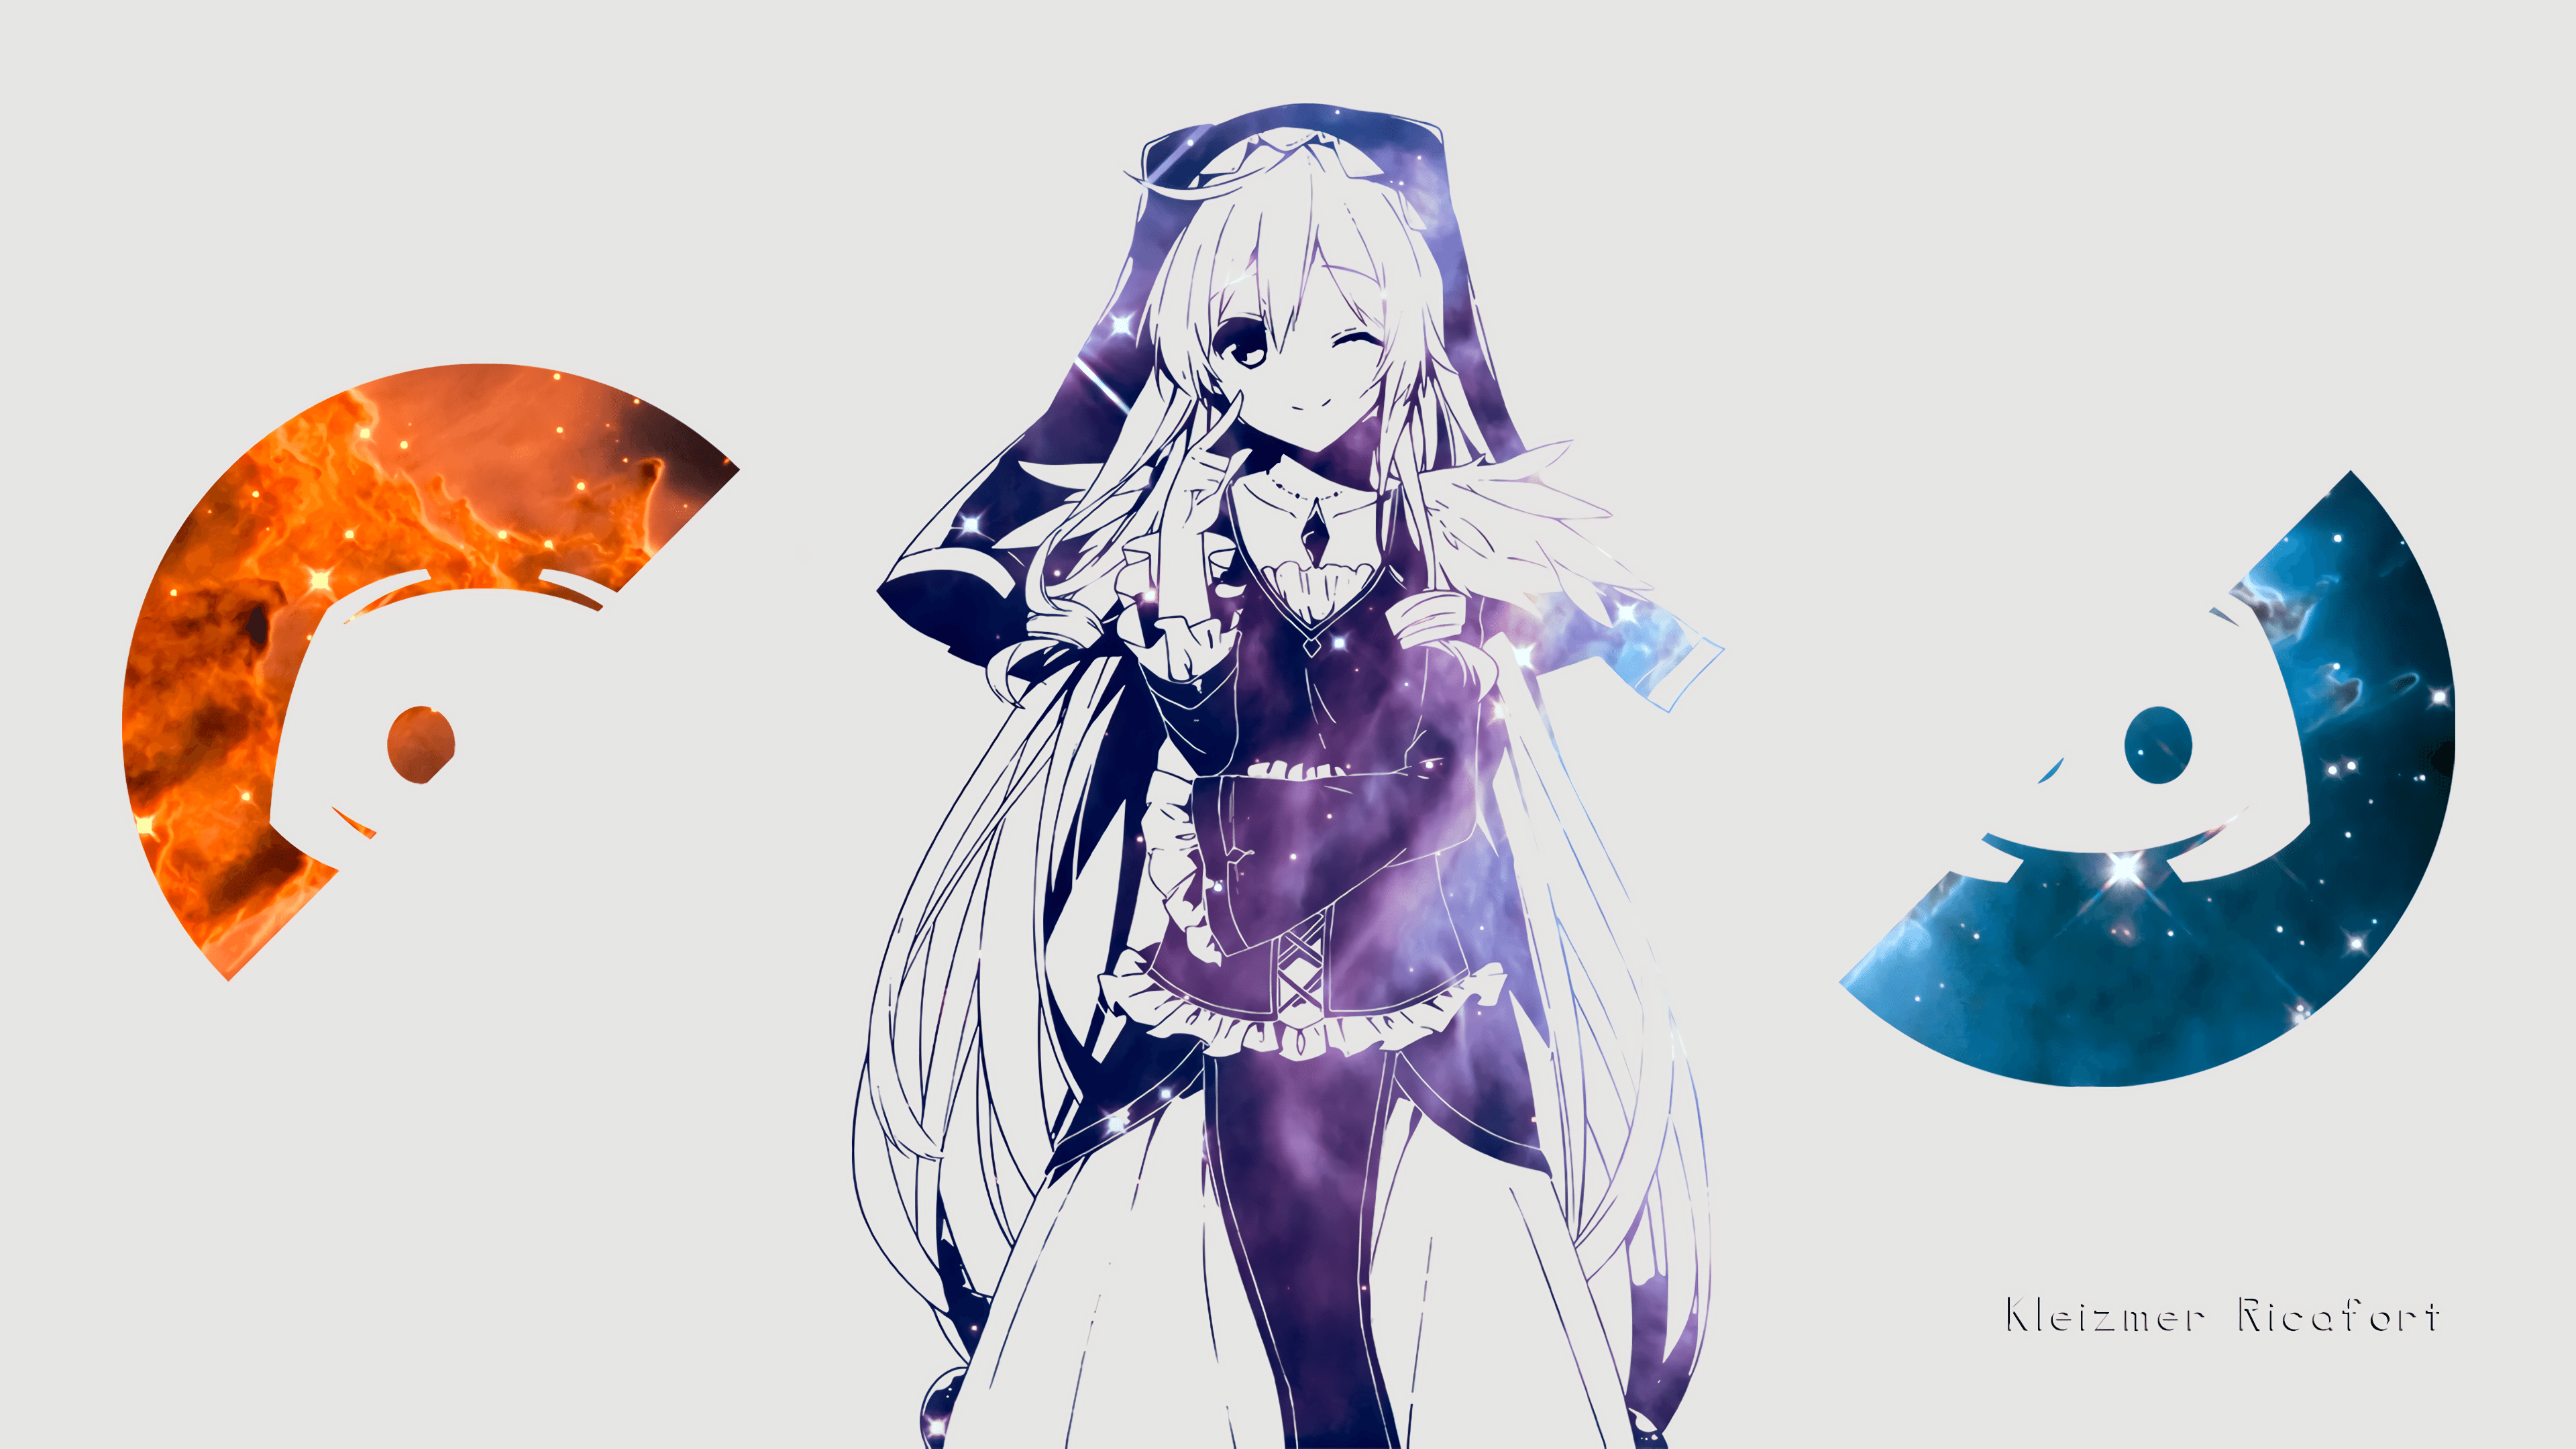 Anime Discord Wallpapers Top Free Anime Discord Backgrounds Wallpaperaccess